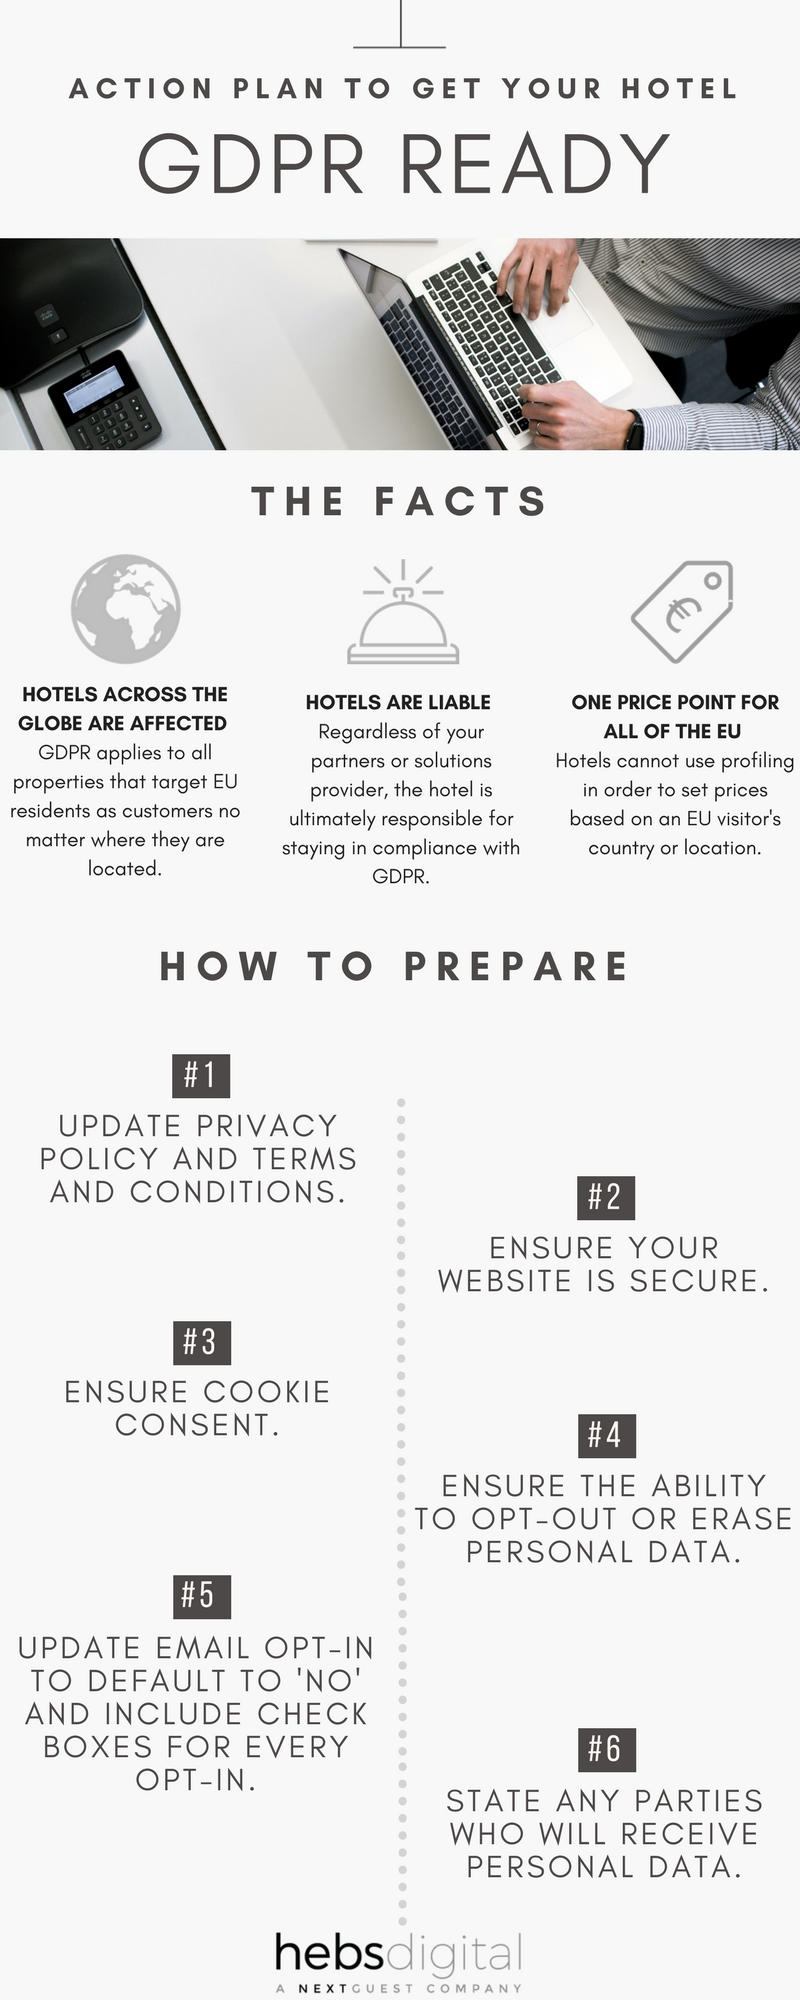 Top Concerns Hotels Need to Know About the GDPR and How to Prepare Your Action Plan